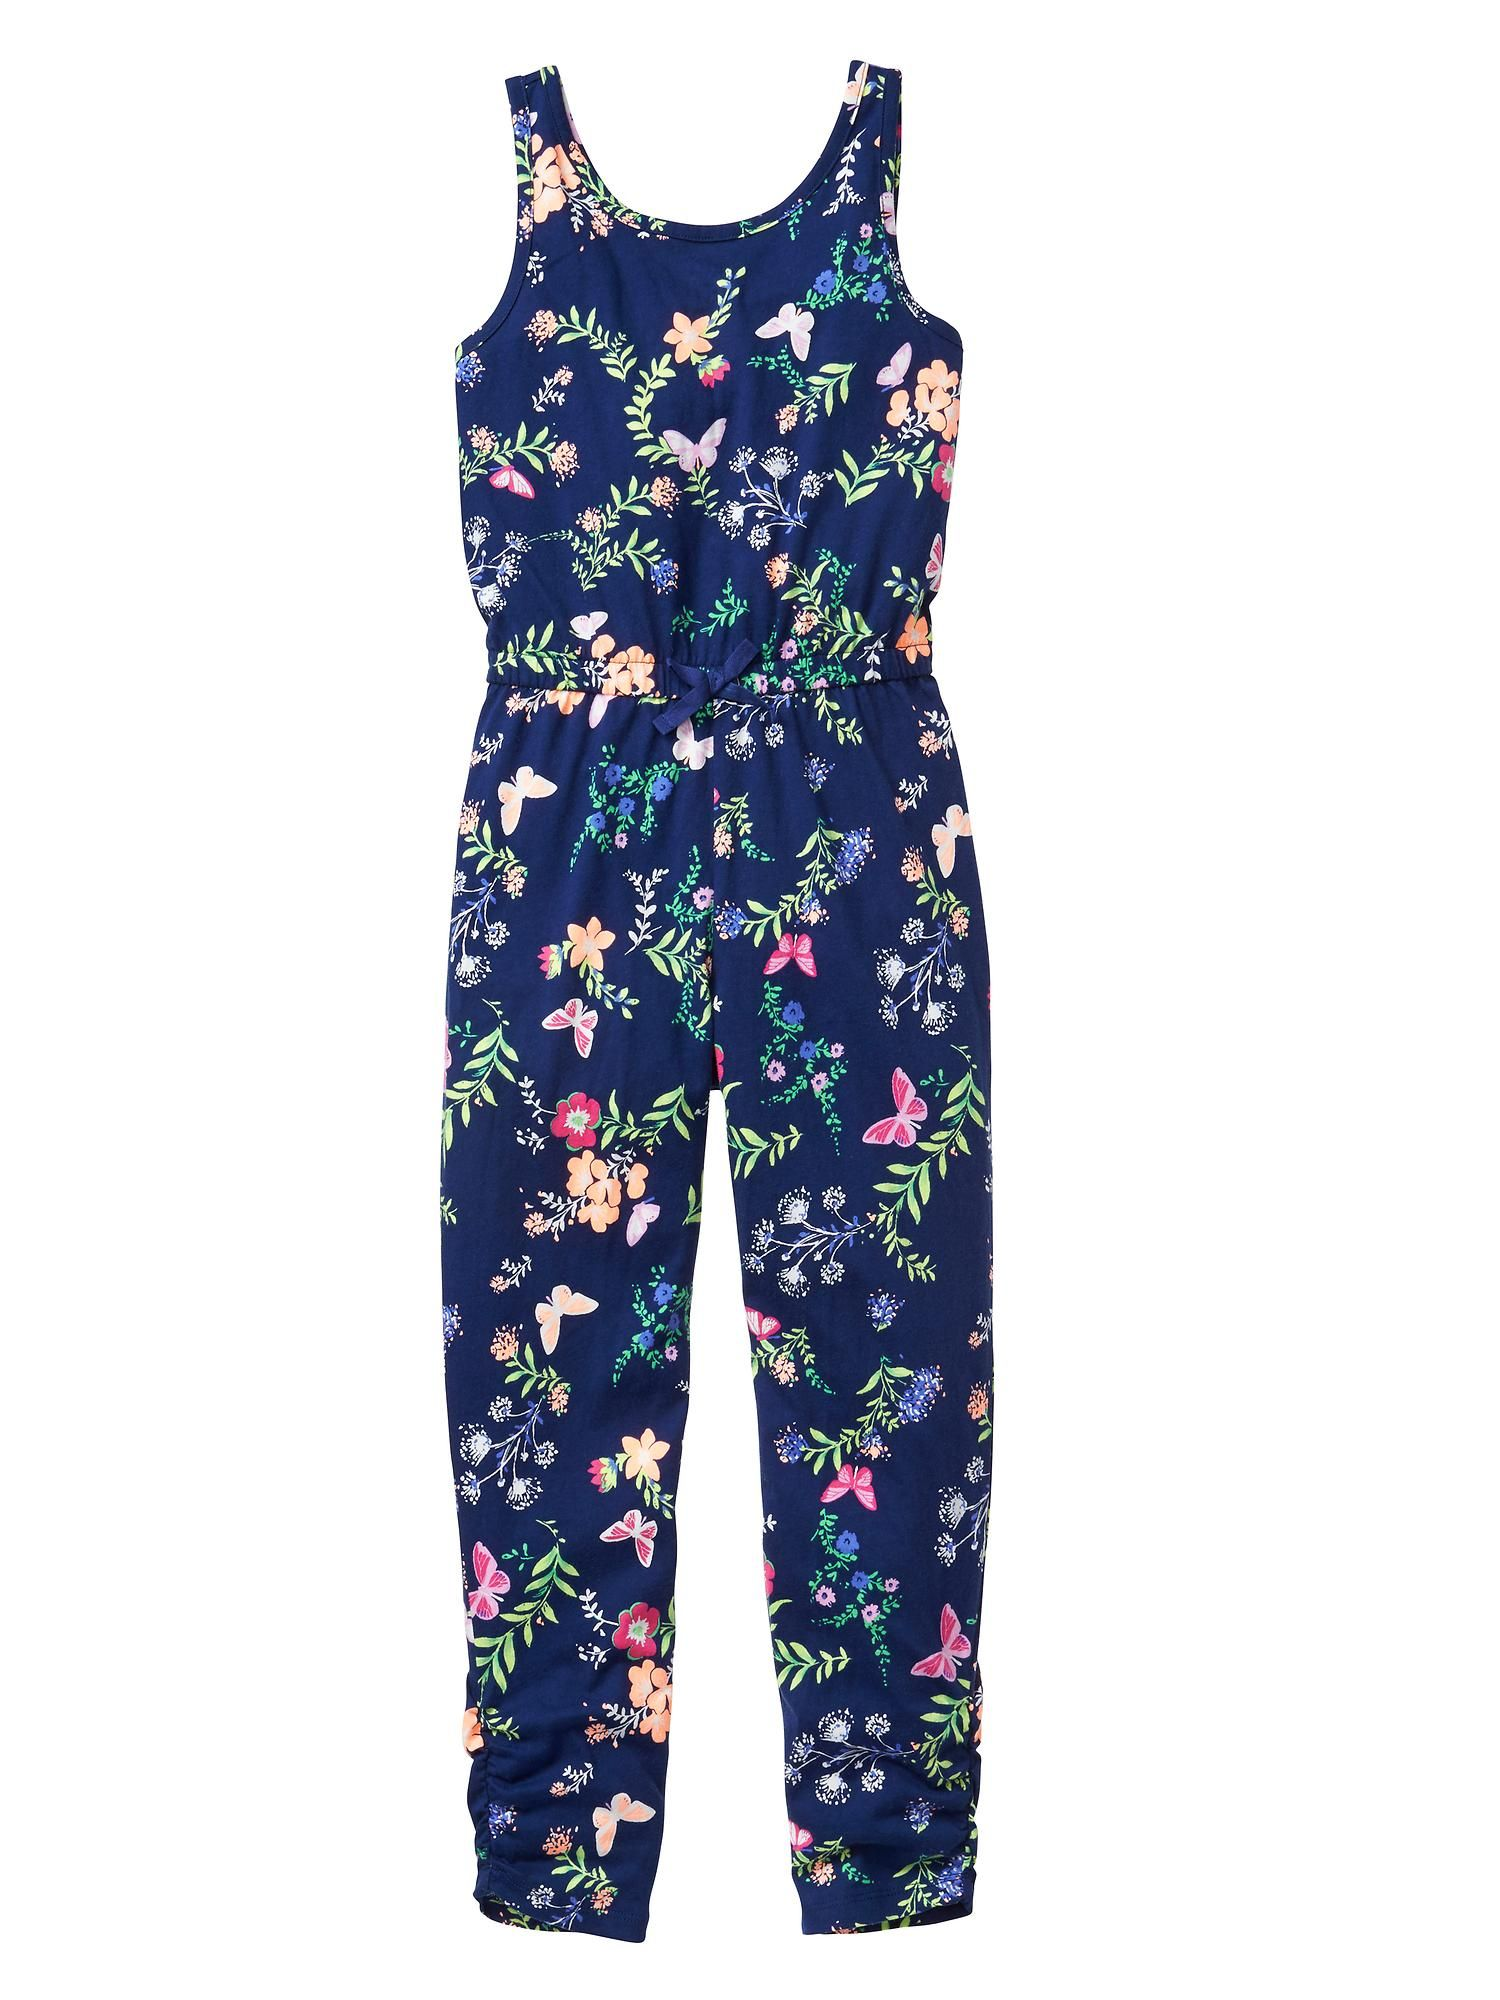 773944faf Jumpsuit by Gap Factory 4-18 yrs | Girls Pants, Shorts, Rompers and ...